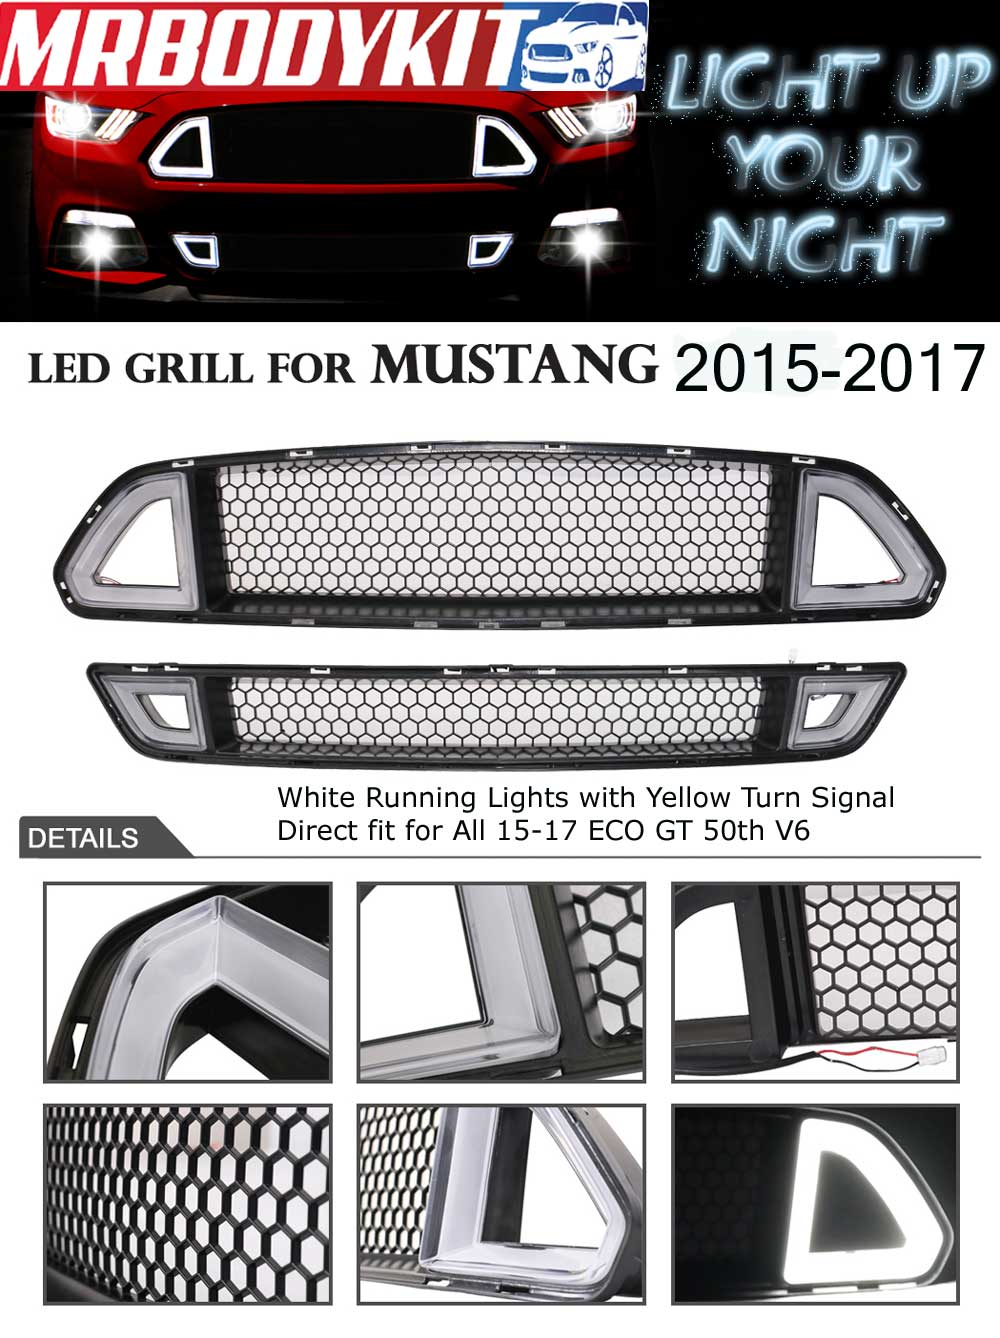 2015-2017 Mustang LED DRL LOWER Grille White Running Lights w/yellow Turn Signals (Fits all models)